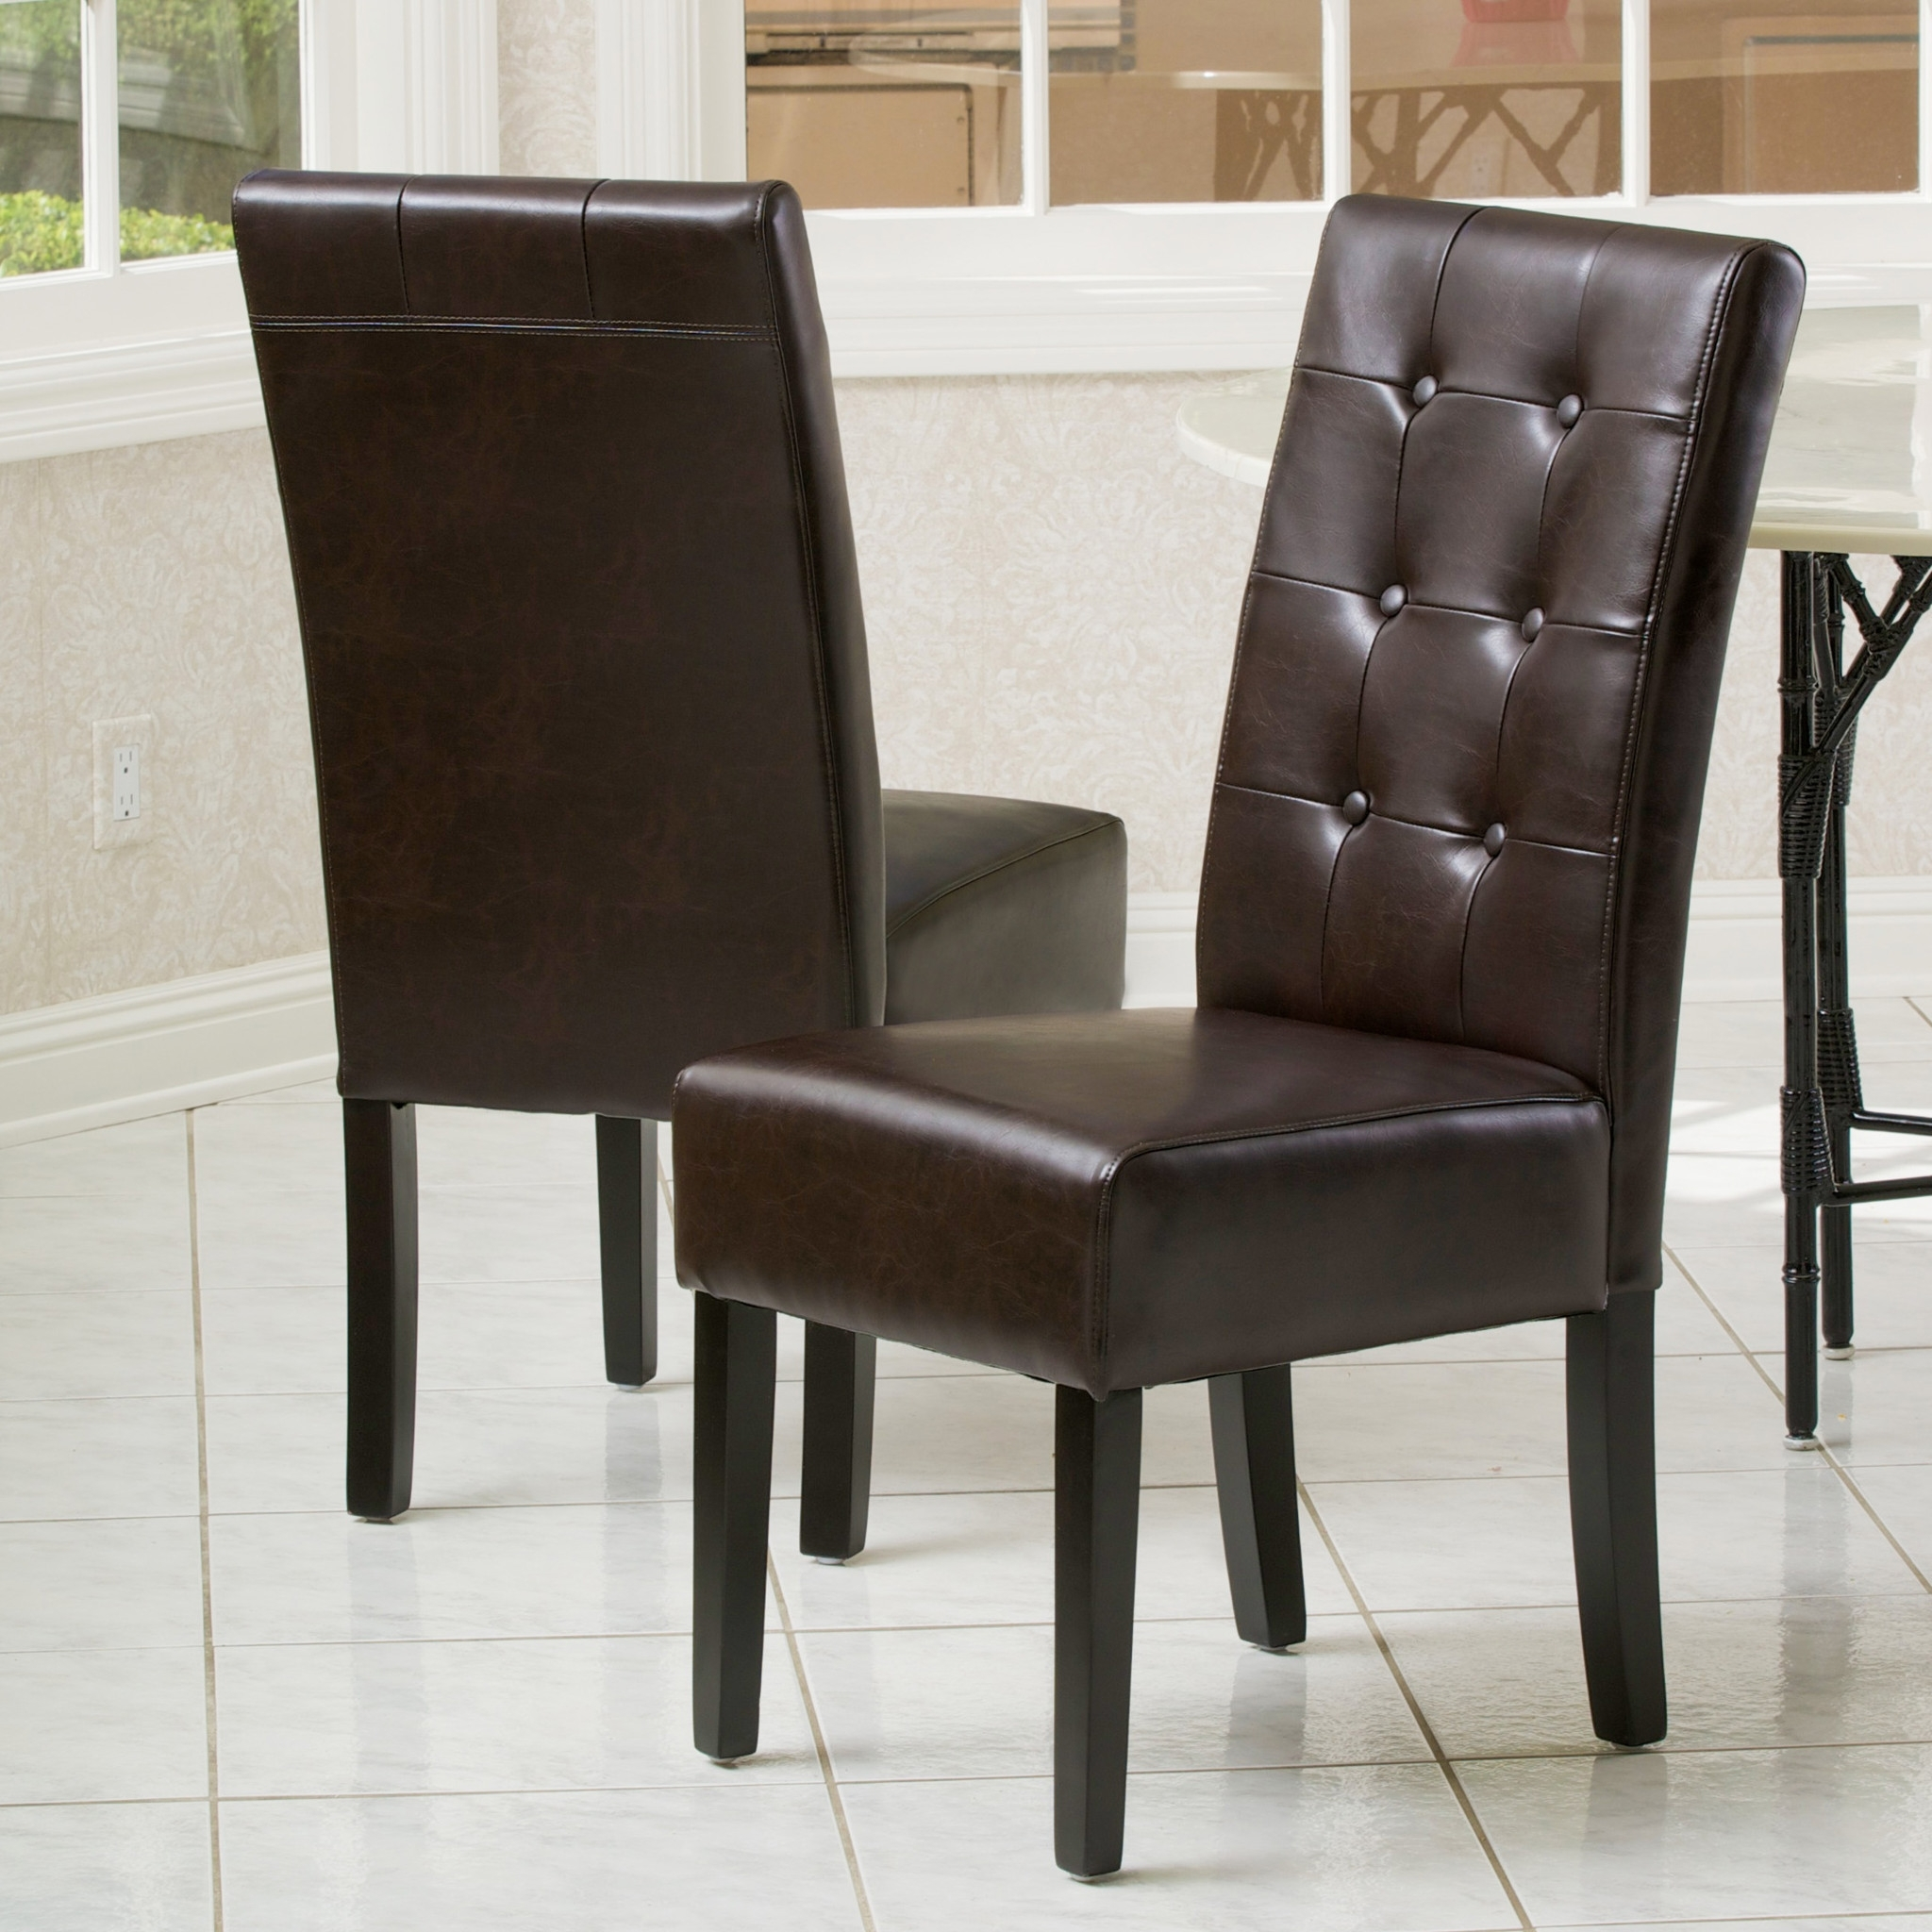 The 26 Lovely Dark Brown Wood Dining Chairs – Fernando Rees For Newest Dark Brown Leather Dining Chairs (View 23 of 25)